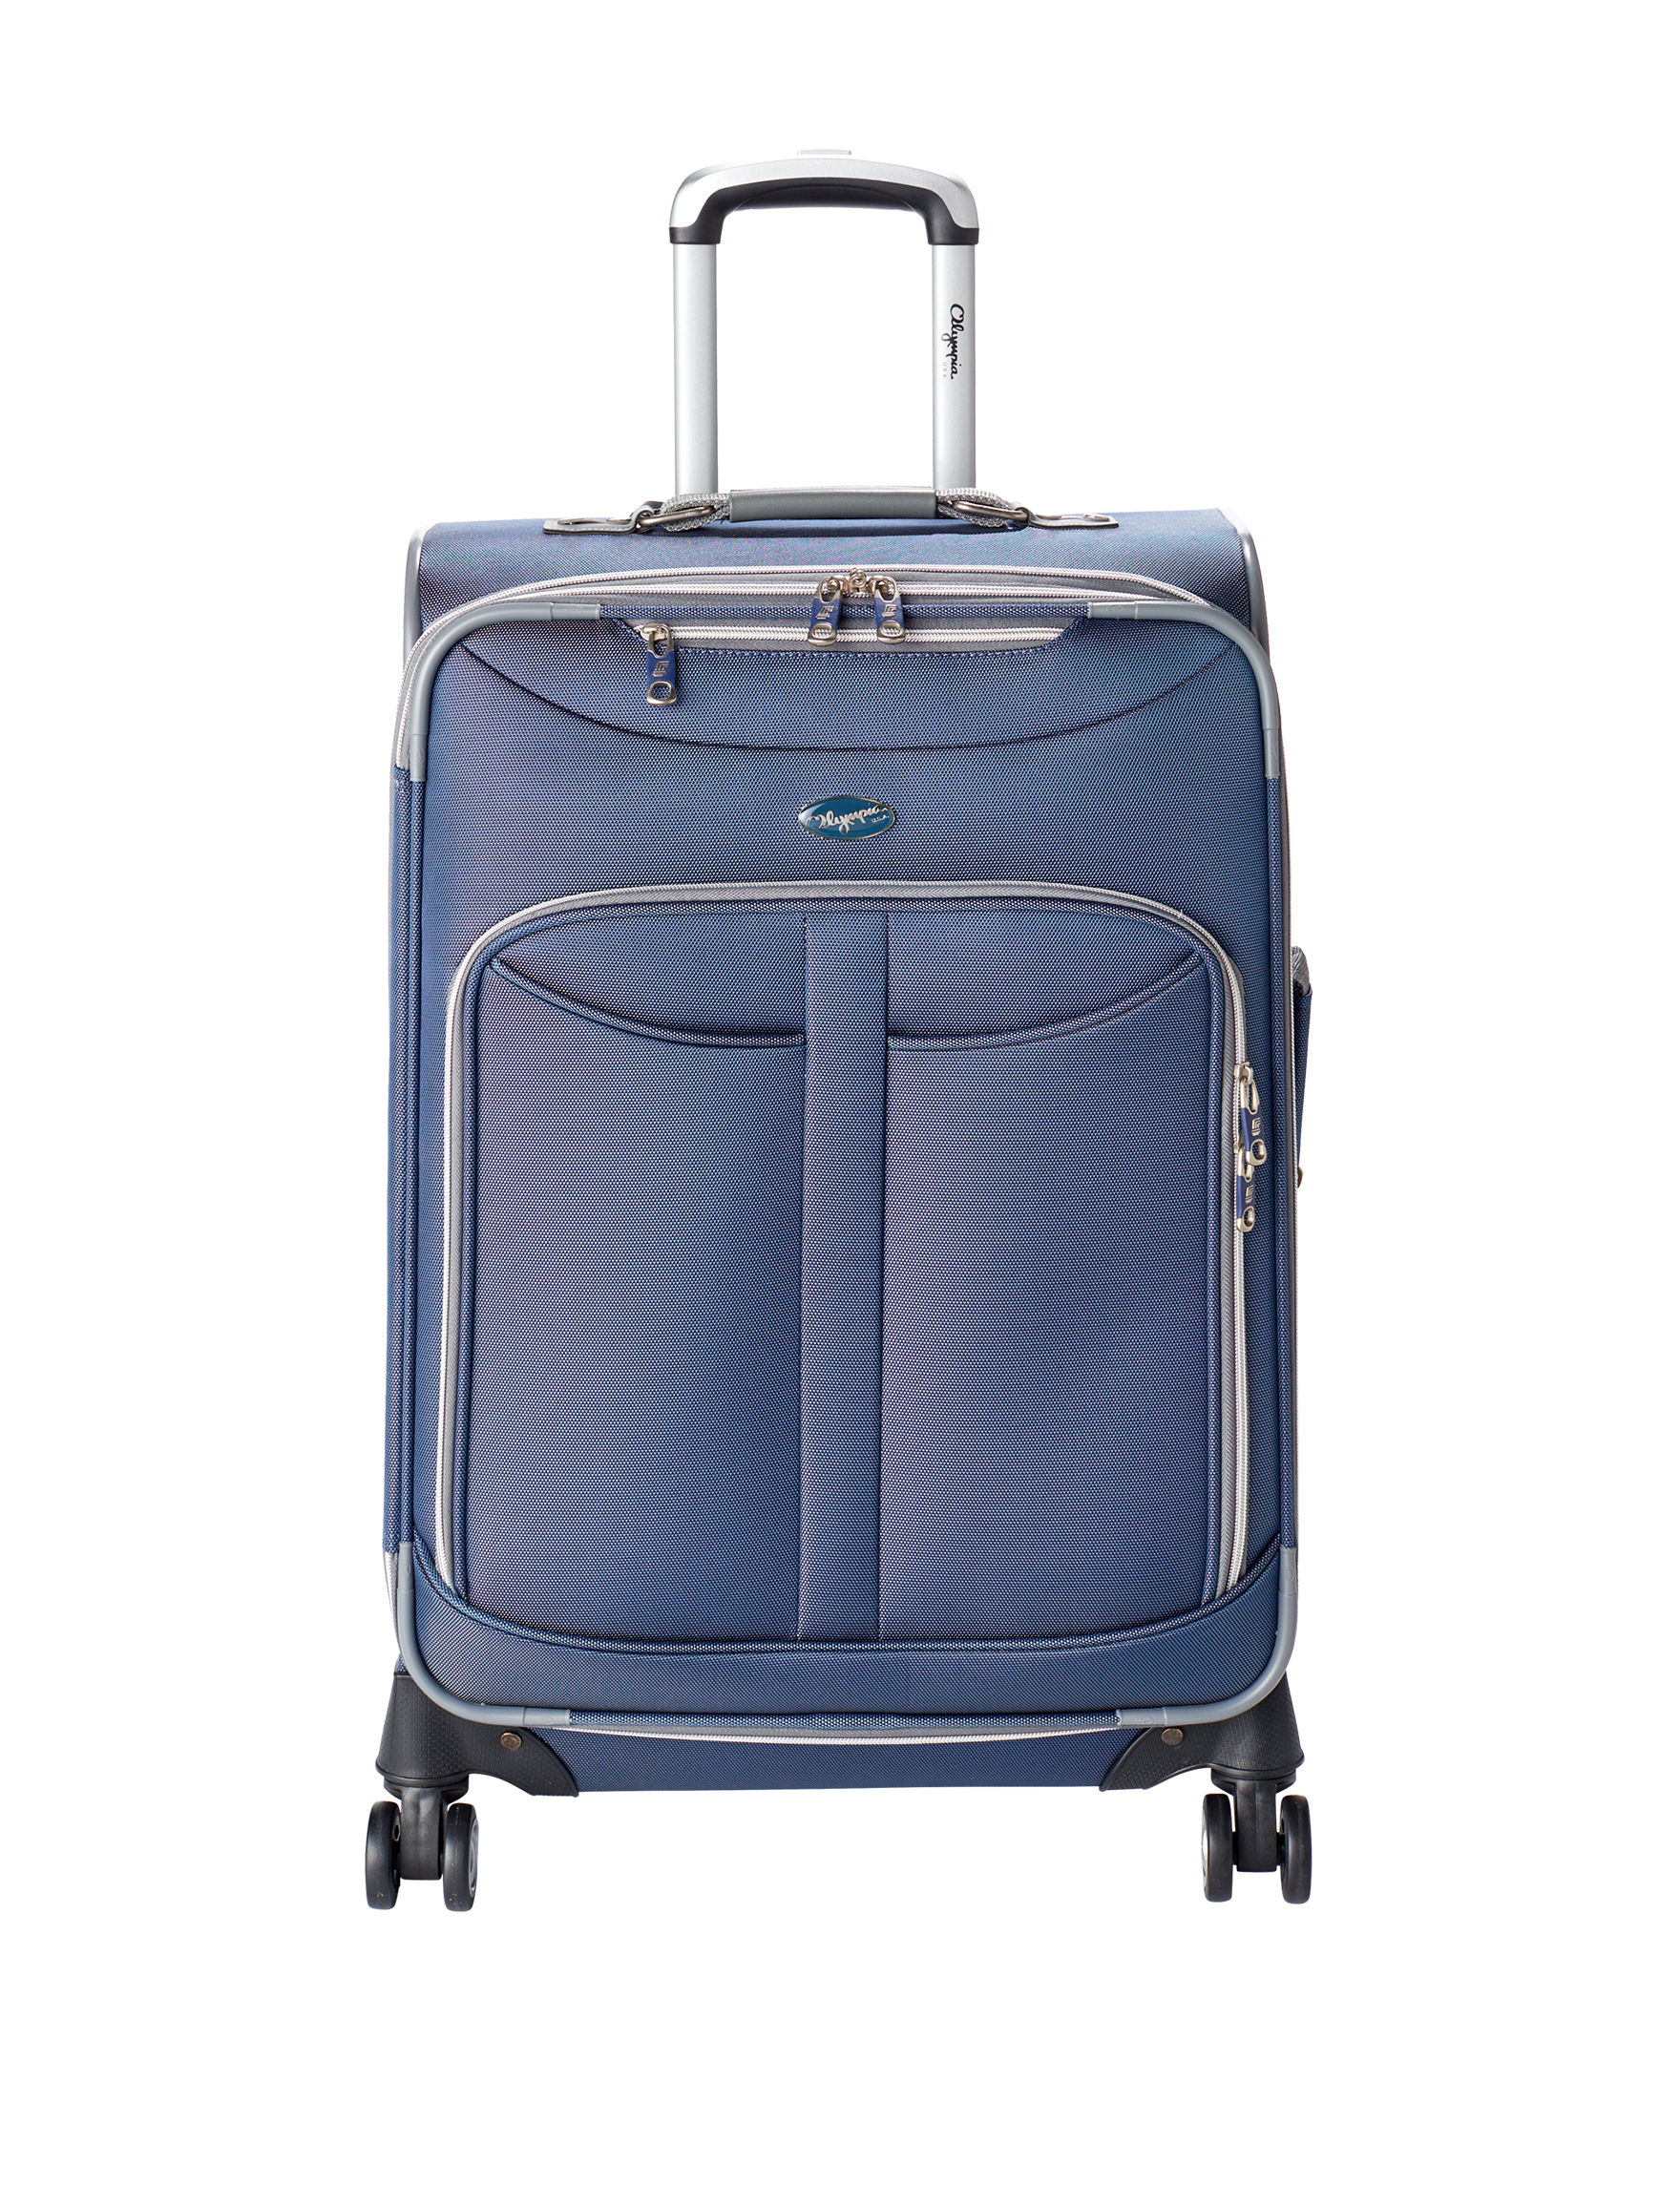 Olympia Blue Travel Accessories Upright Spinners